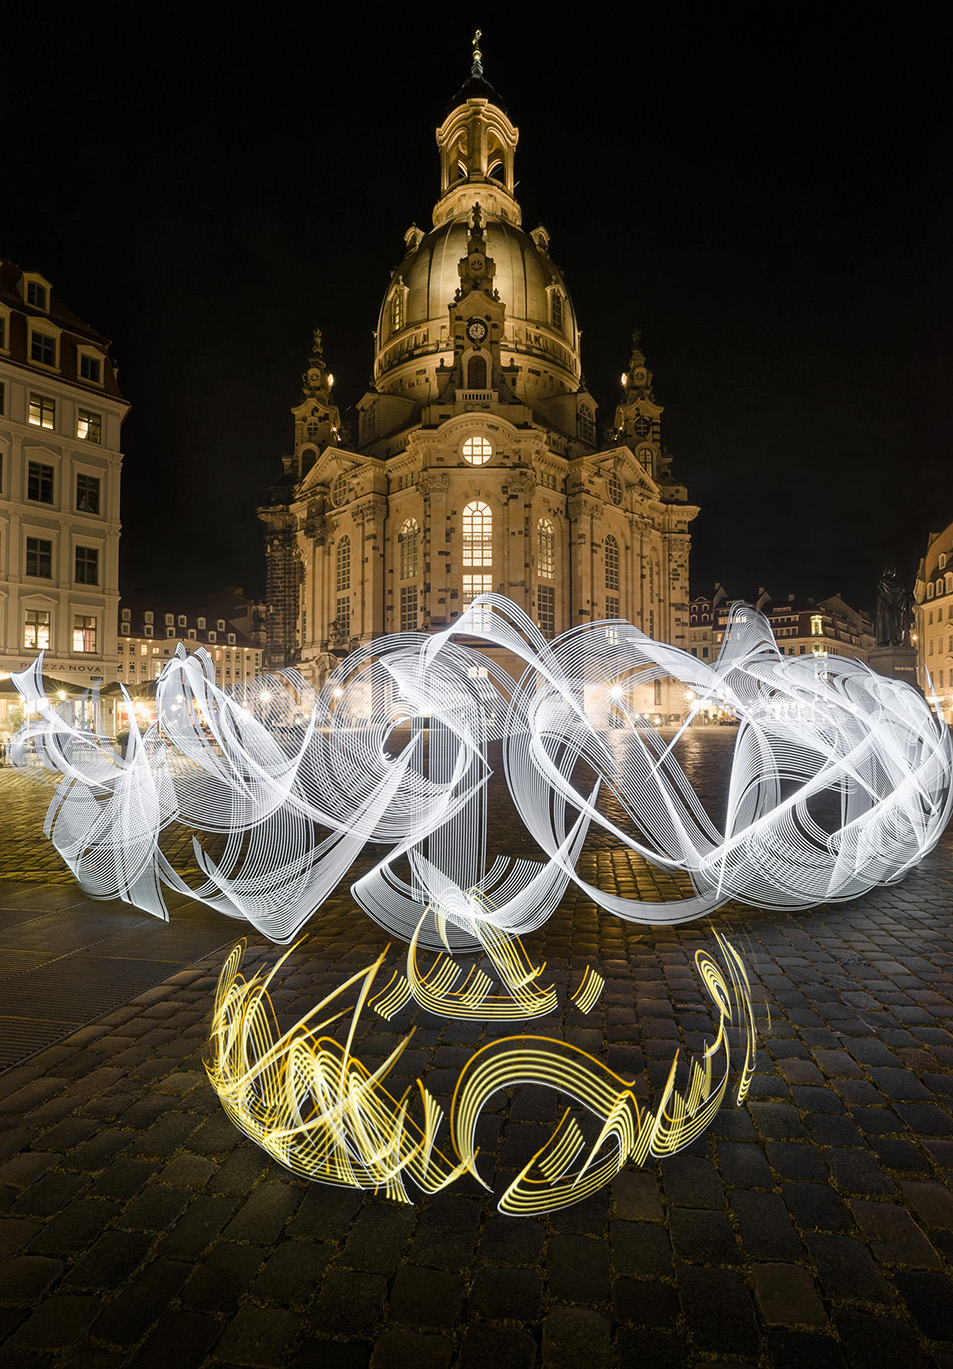 Said Dokins & Leonardo Luna, The Power of the people, 2016. Light Calligraphy. Dresden. Germany.